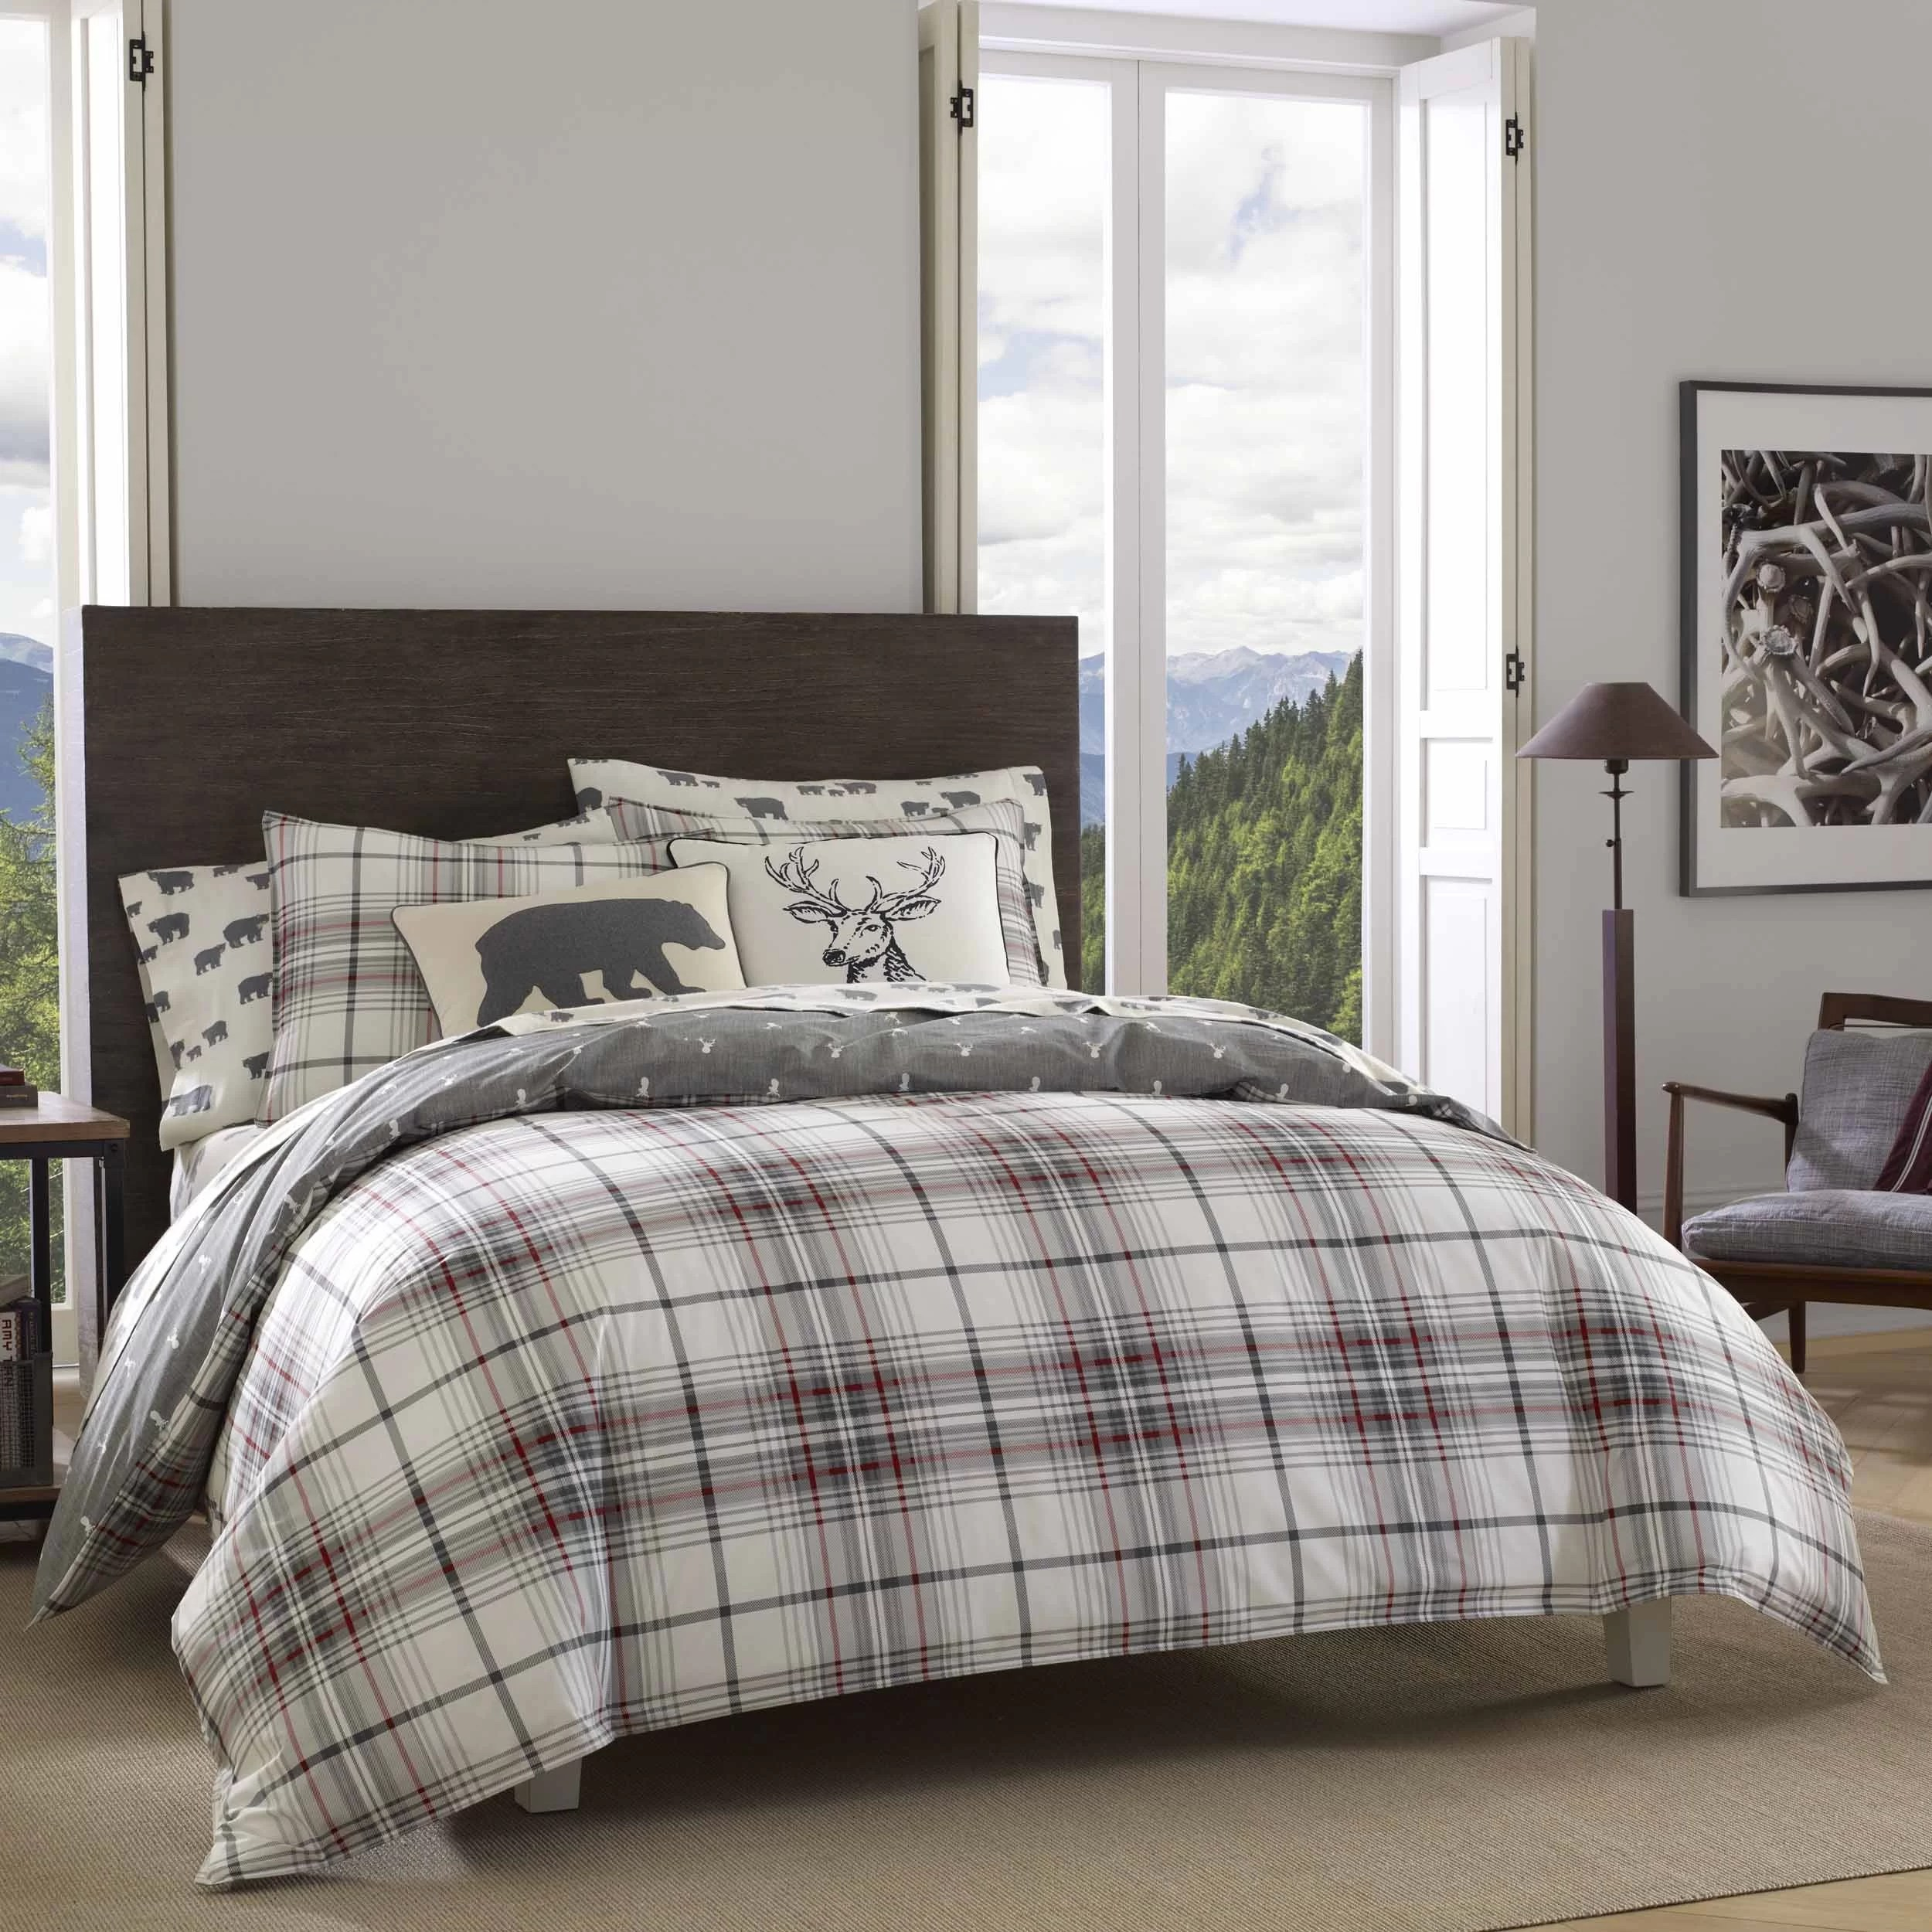 comforter red bedding you ll love in